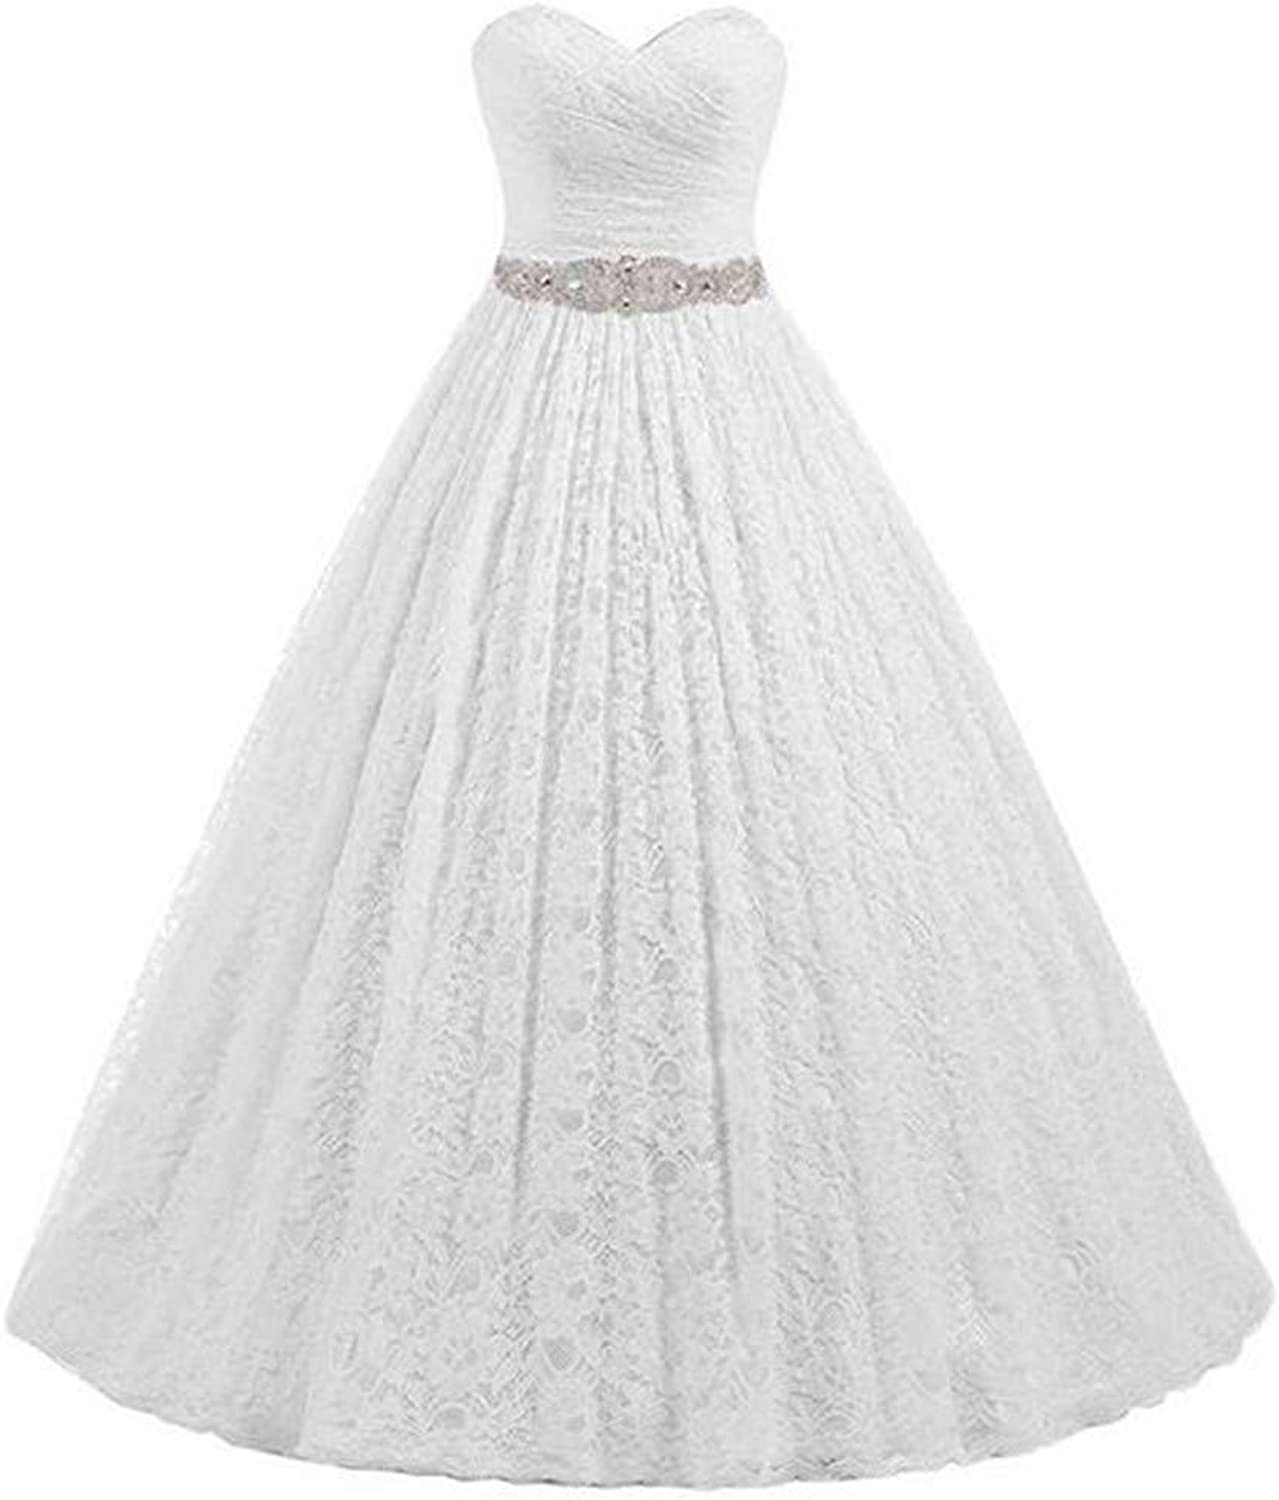 Aiyue Yishen Women's HeartShaped Lace Aline Floor Length Bride Wedding Dresses